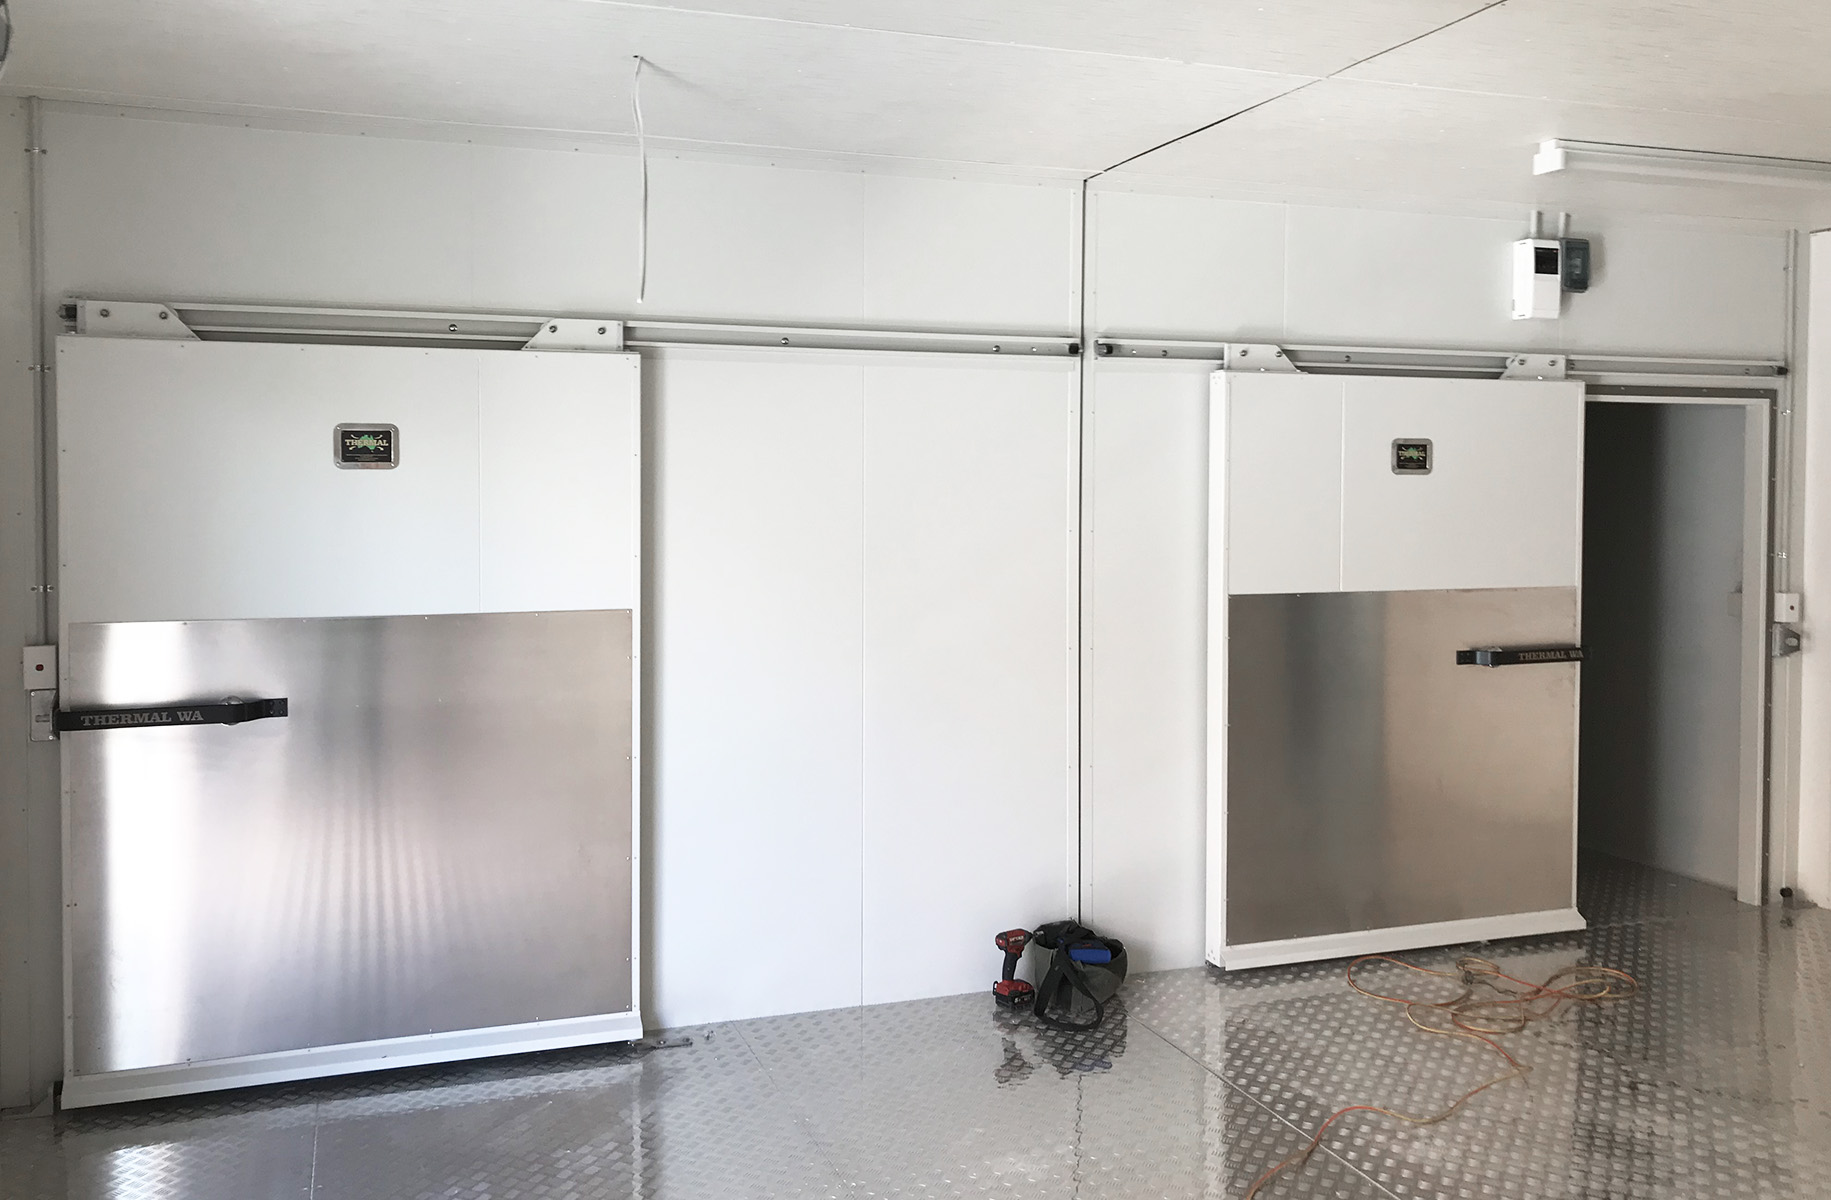 Transportable_Camp_Coldroom_Sliding_Entry_Doors.jpg